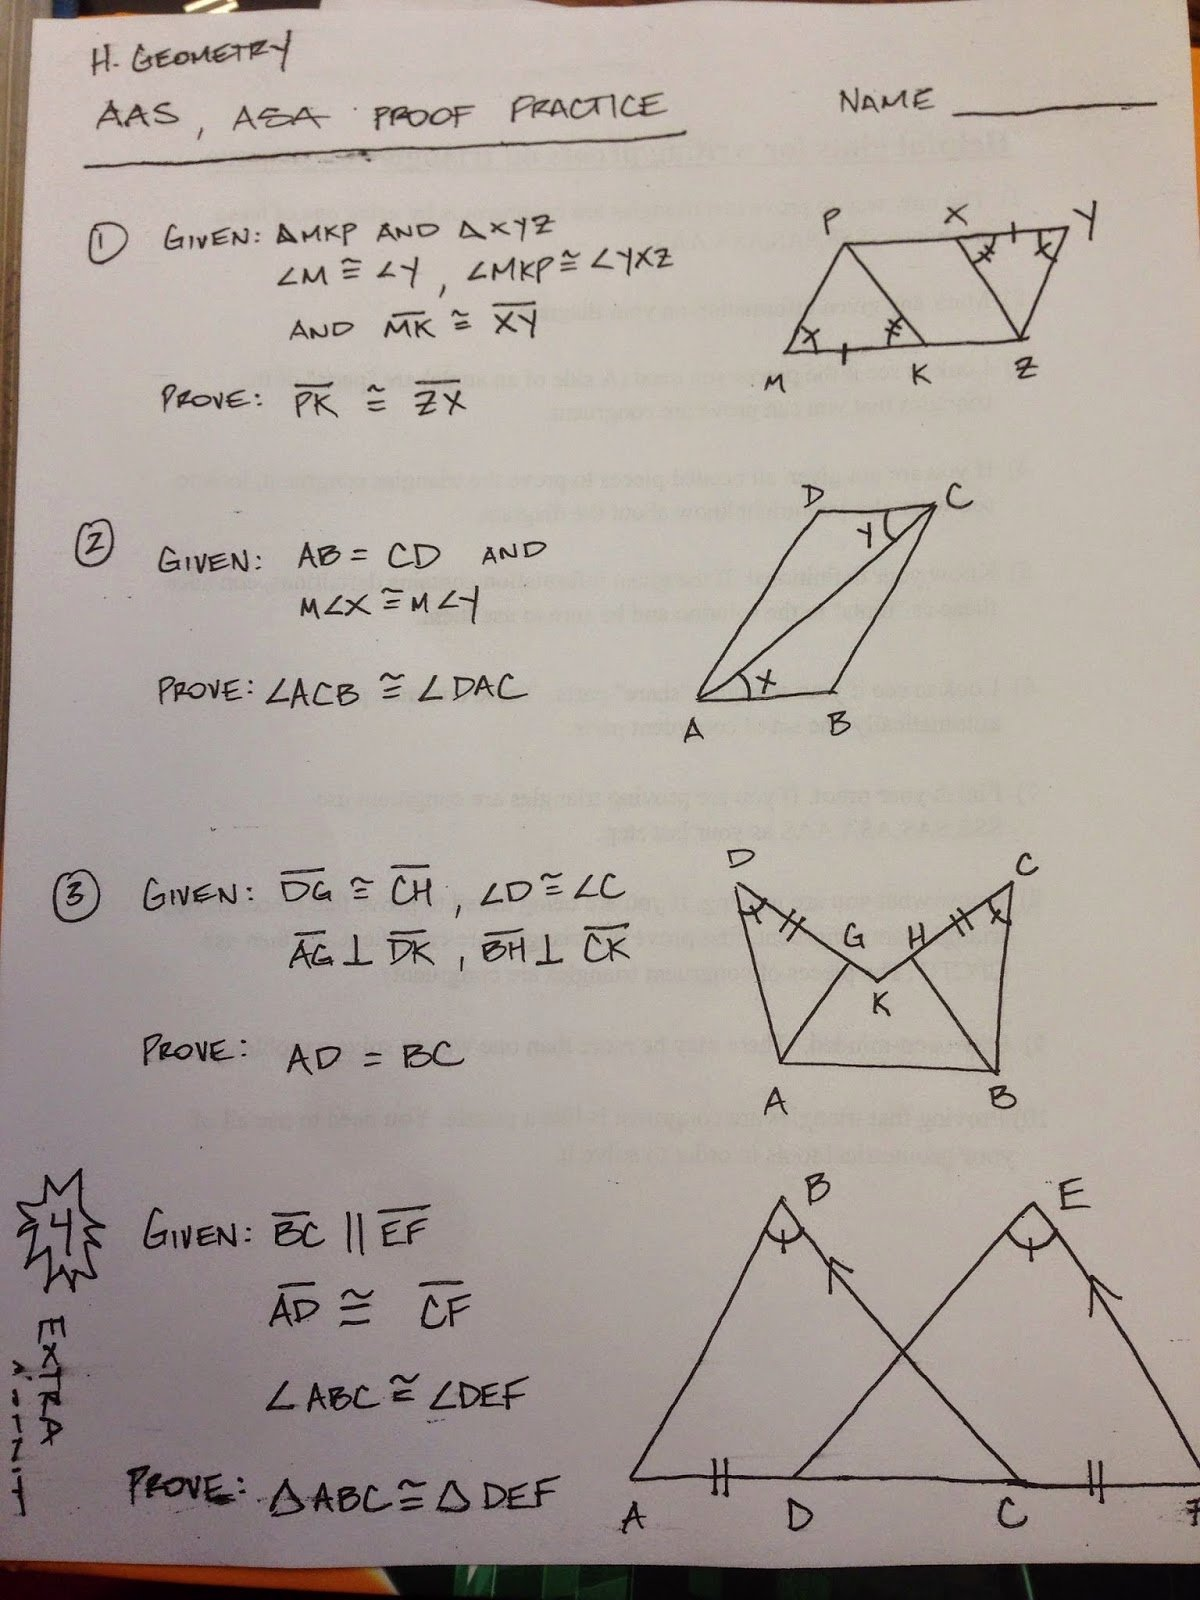 Geometry Proof Practice Worksheet Unique Honors Geometry Vintage High School Section 4 5 Proof